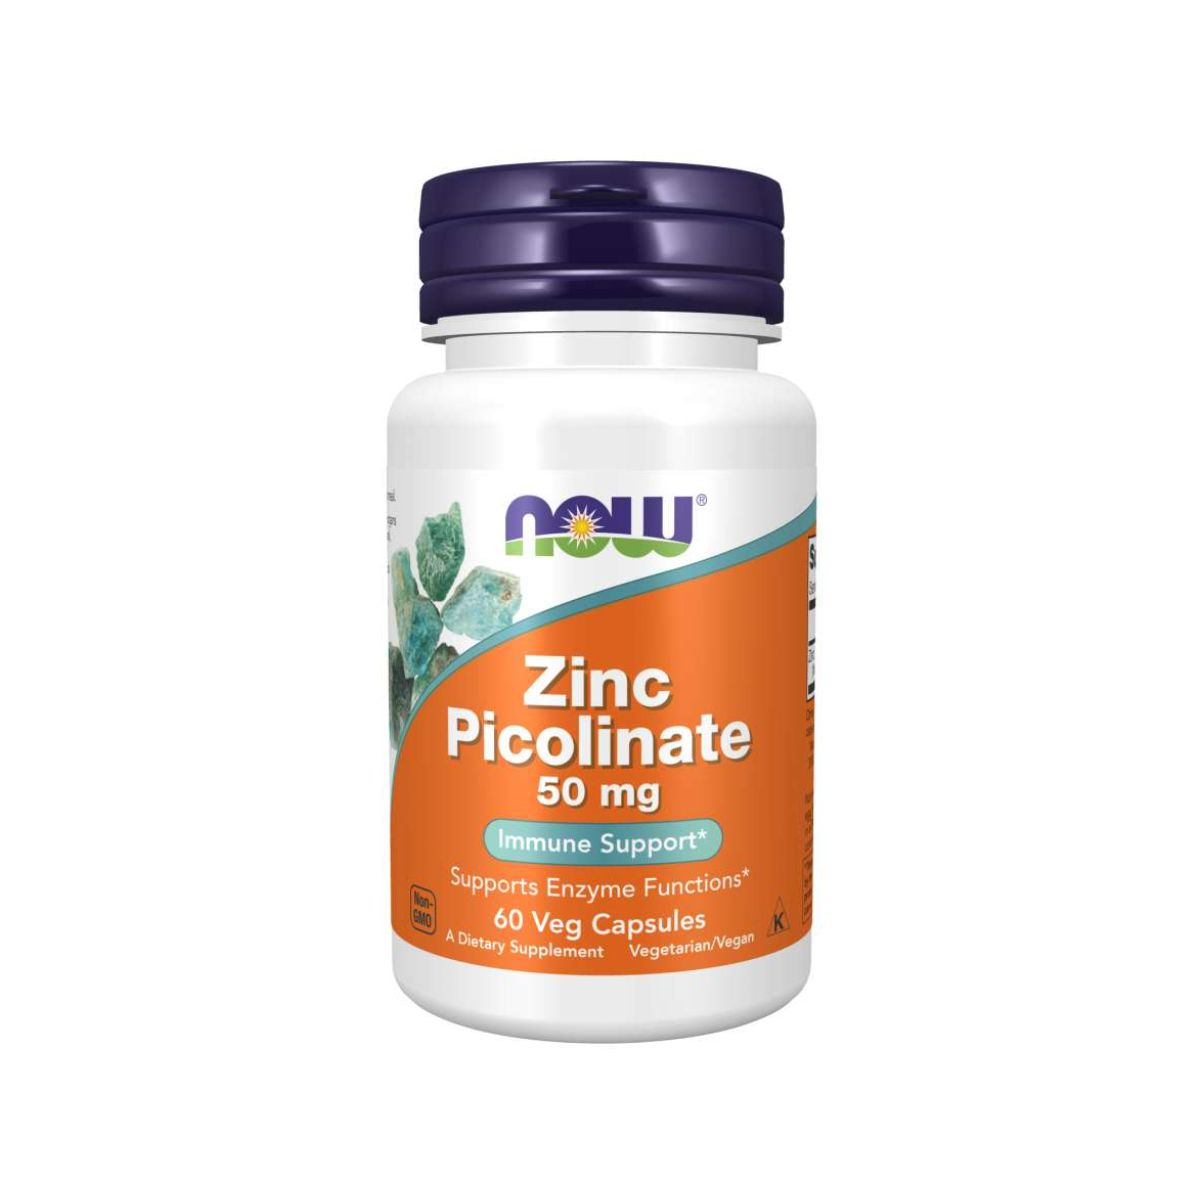 Zinc Picolinate 50mg Immune Support 60Caps - Now Foods